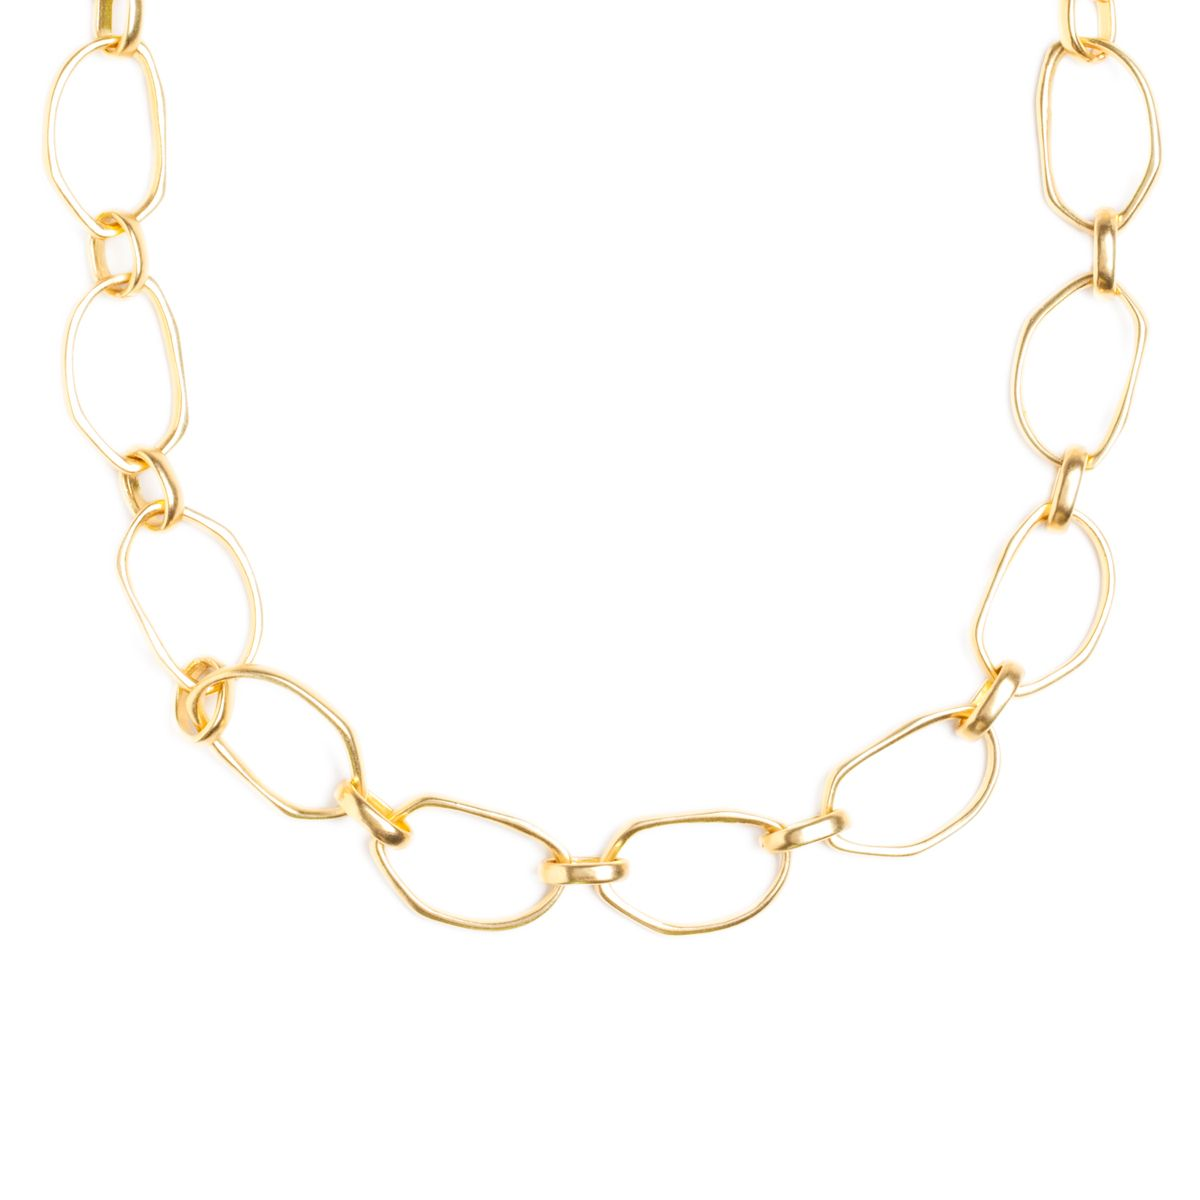 Gold link necklaces are wardrobe staples but this one is fashion